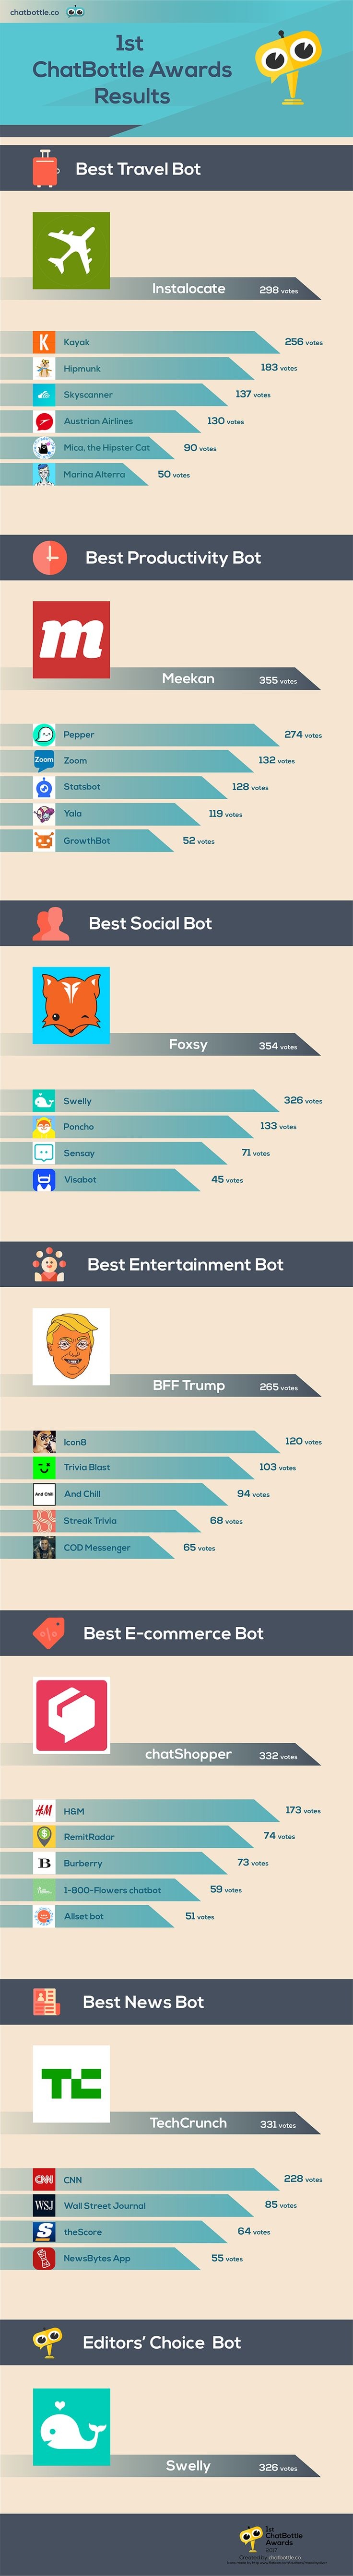 These 7 Chatbots Are The Winners of 1st ChatBottle Awards